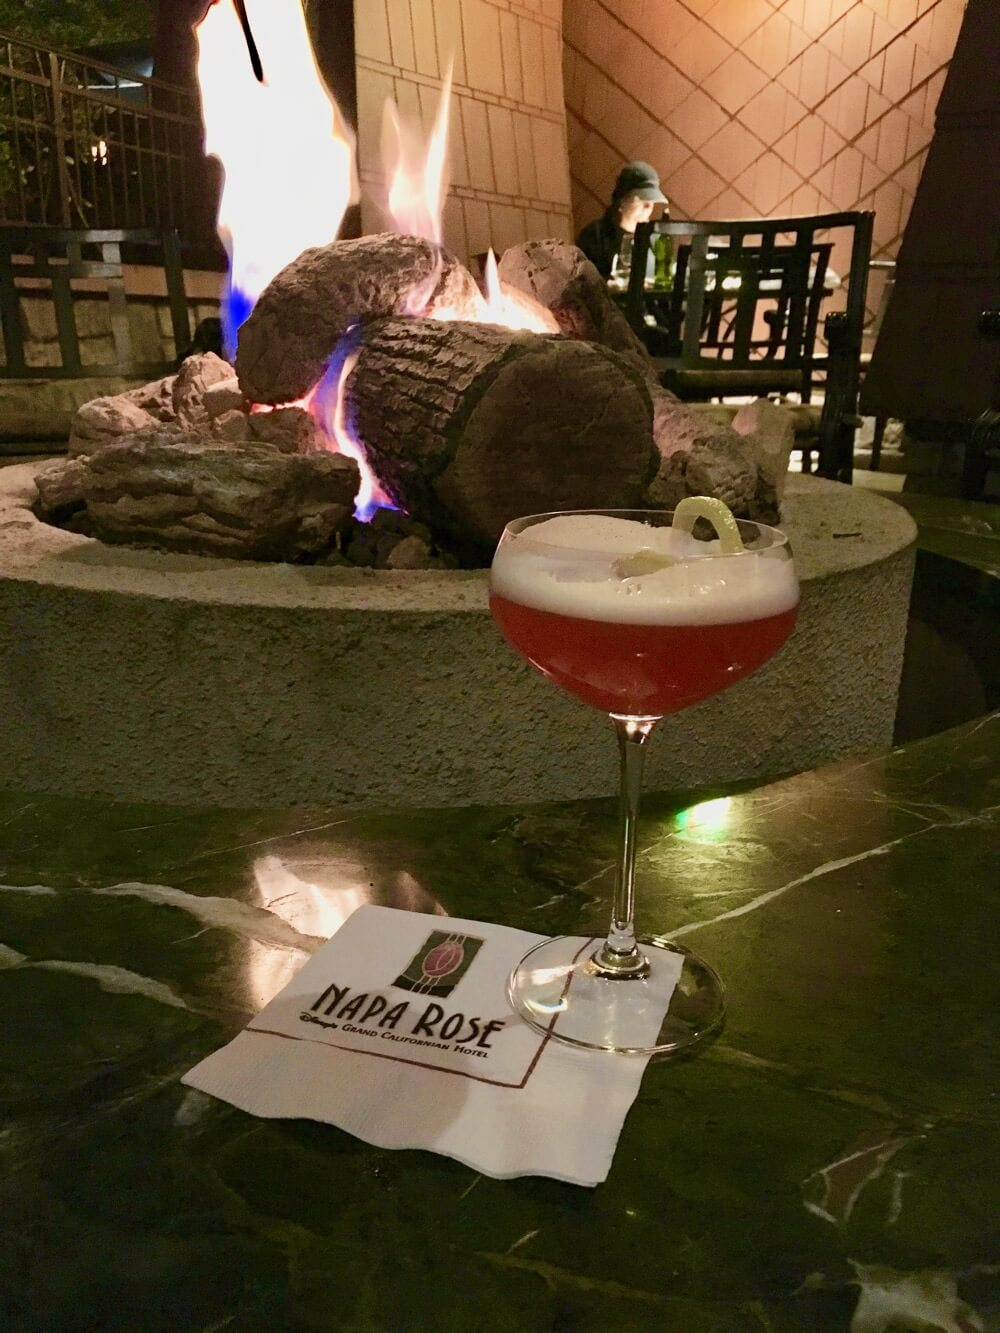 Best Bars and Lounges at Disneyland - Napa Rose Passion